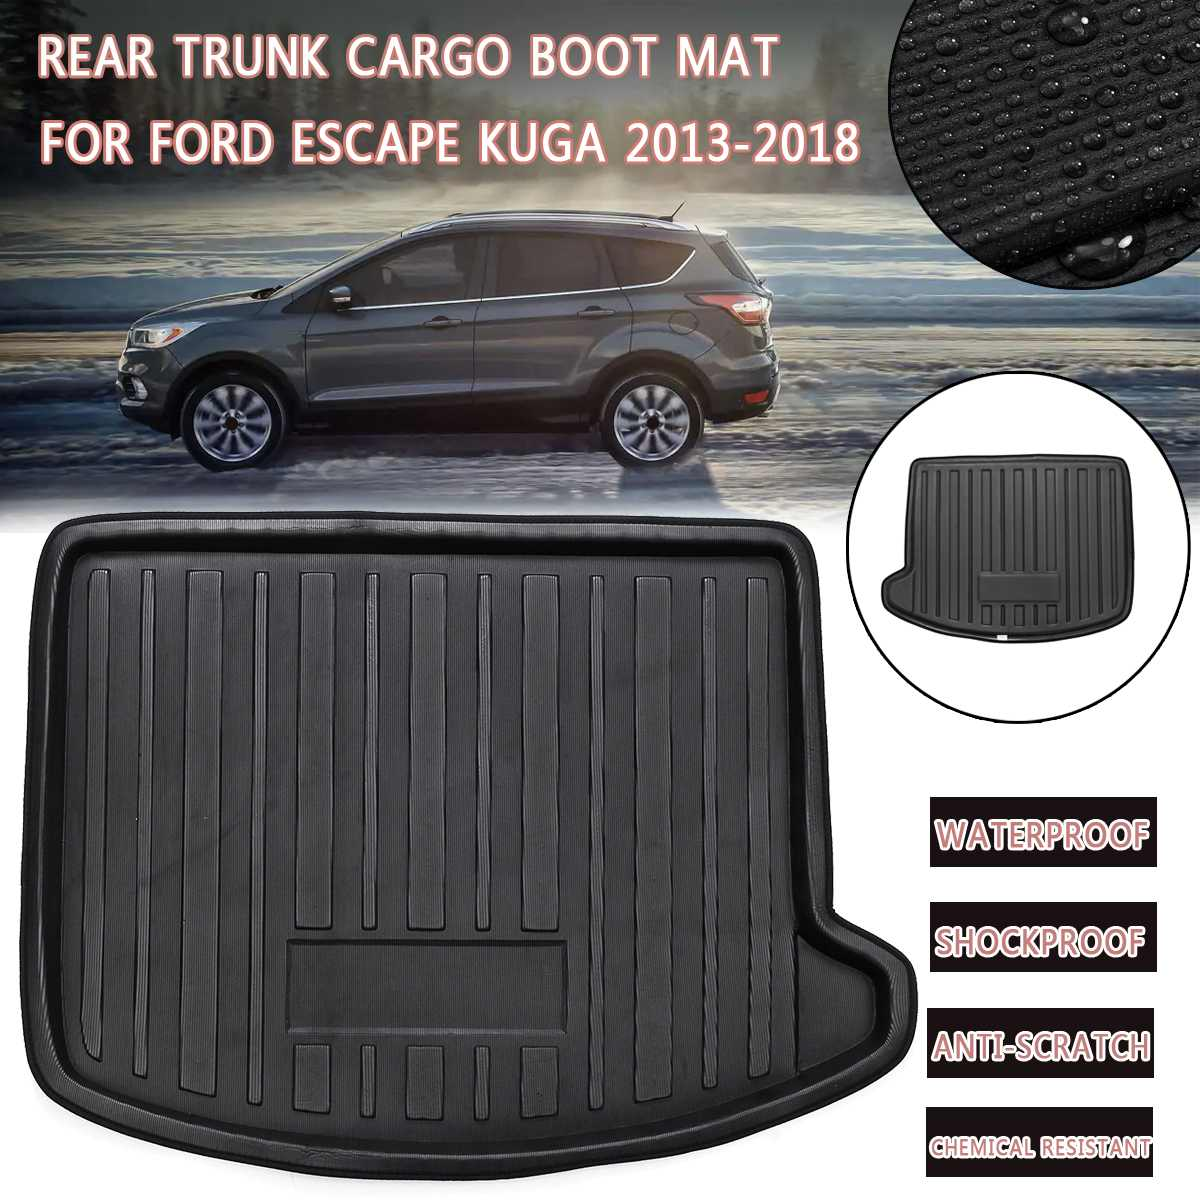 Boot Mat Rear Trunk Liner Cargo Floor Tray Carpet Mud Kick Protector Overlay For Ford Escape Kuga 2013 2014 2015 2016  2017 2018